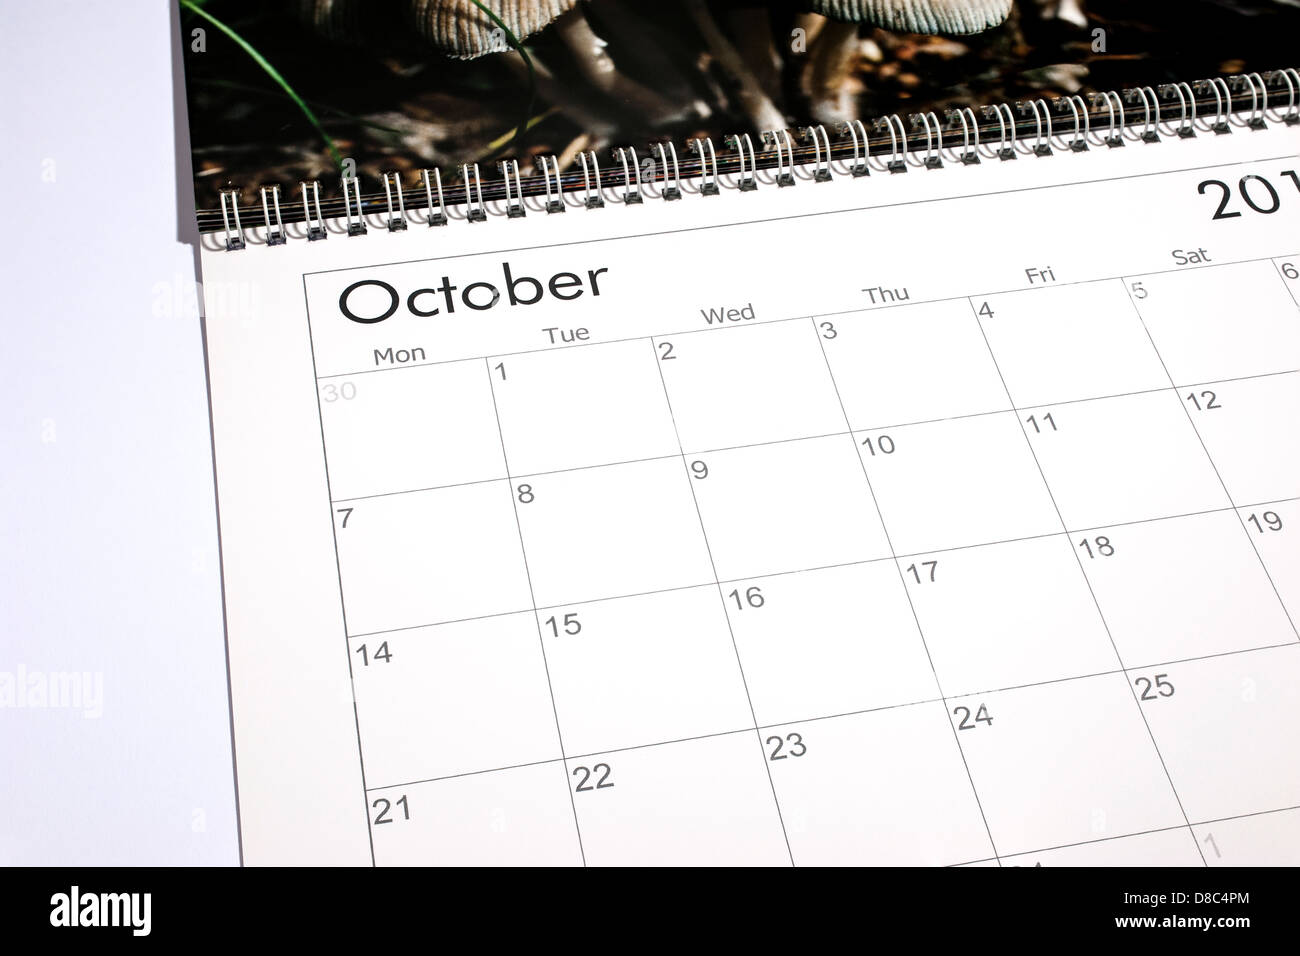 Blank calendar page - October 2013 - Stock Image